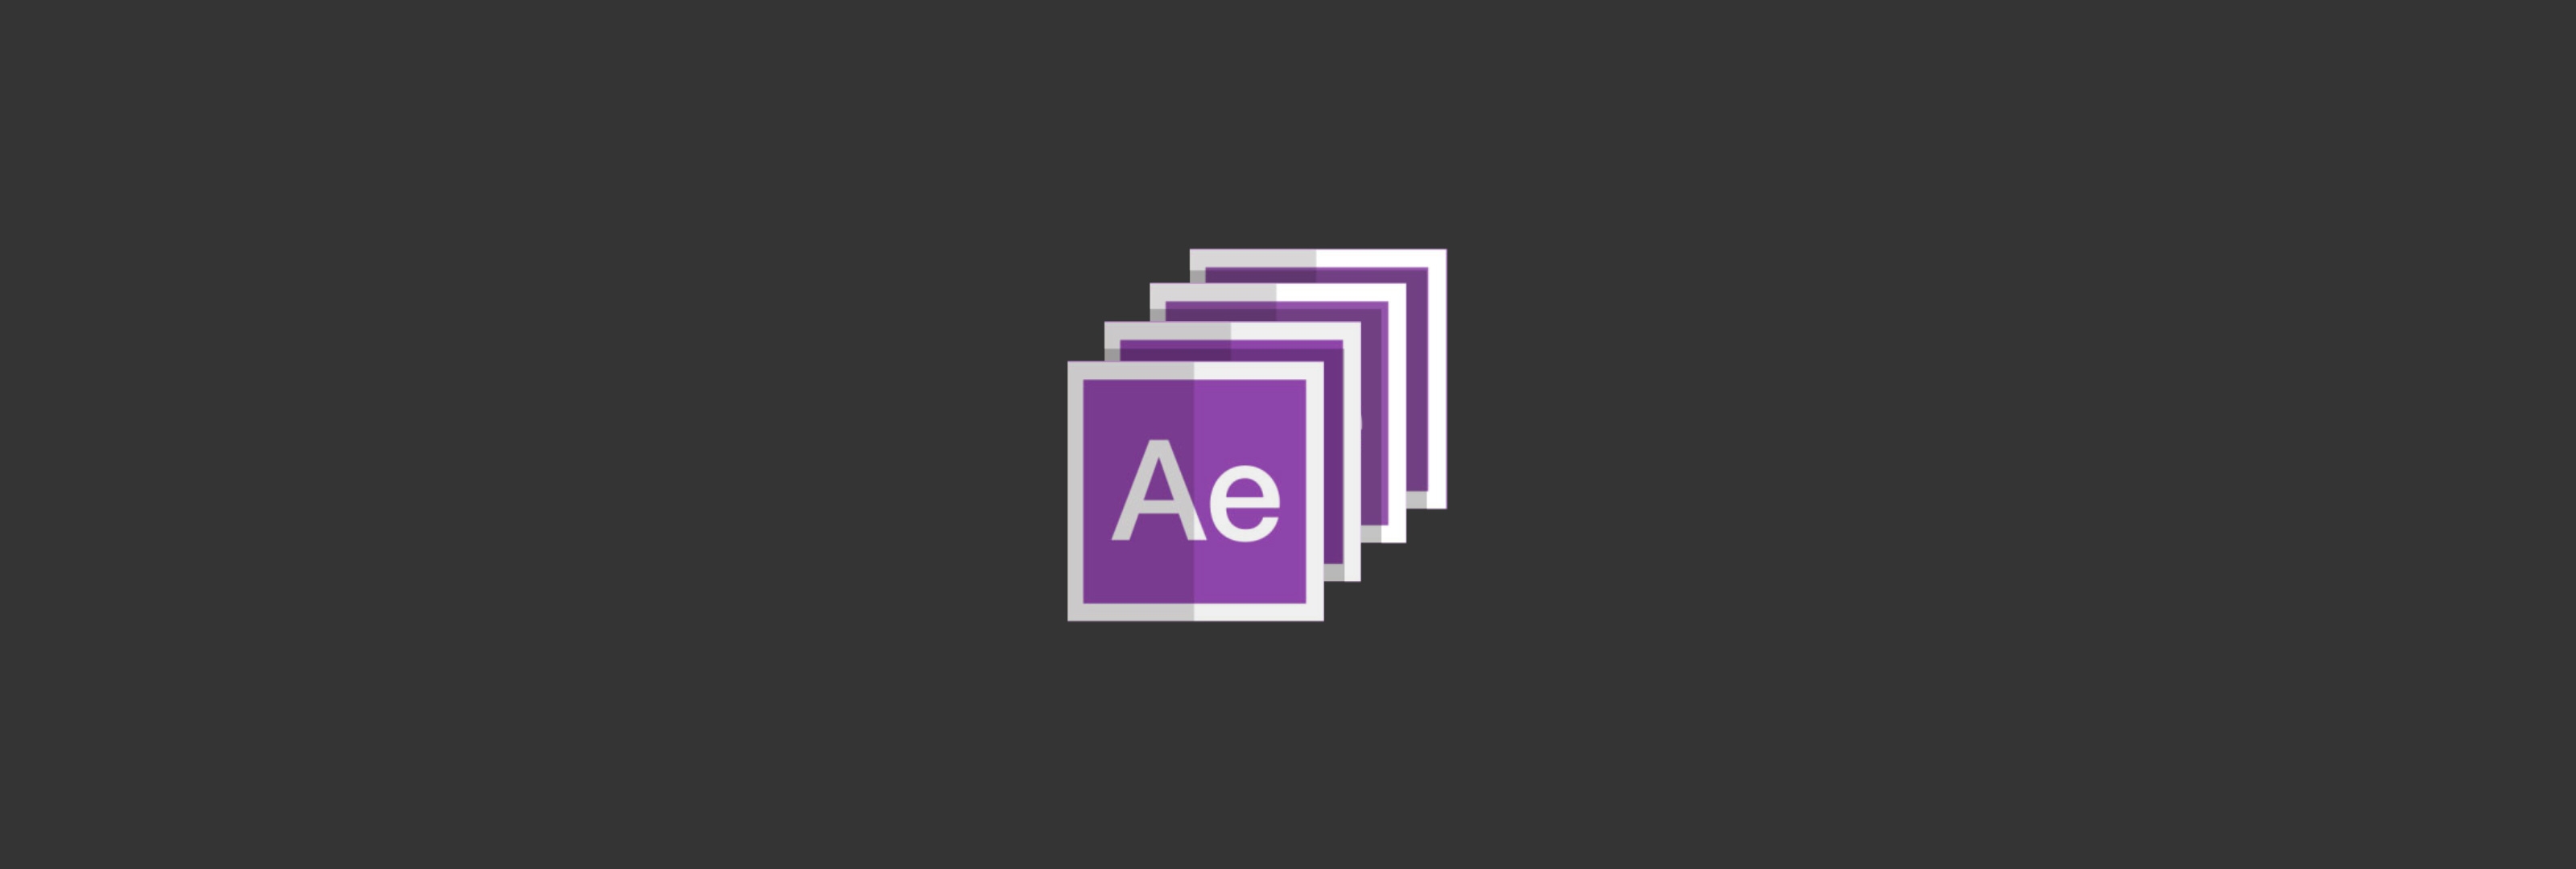 How To Use After Effects Templates In Your Project Workflow Motion